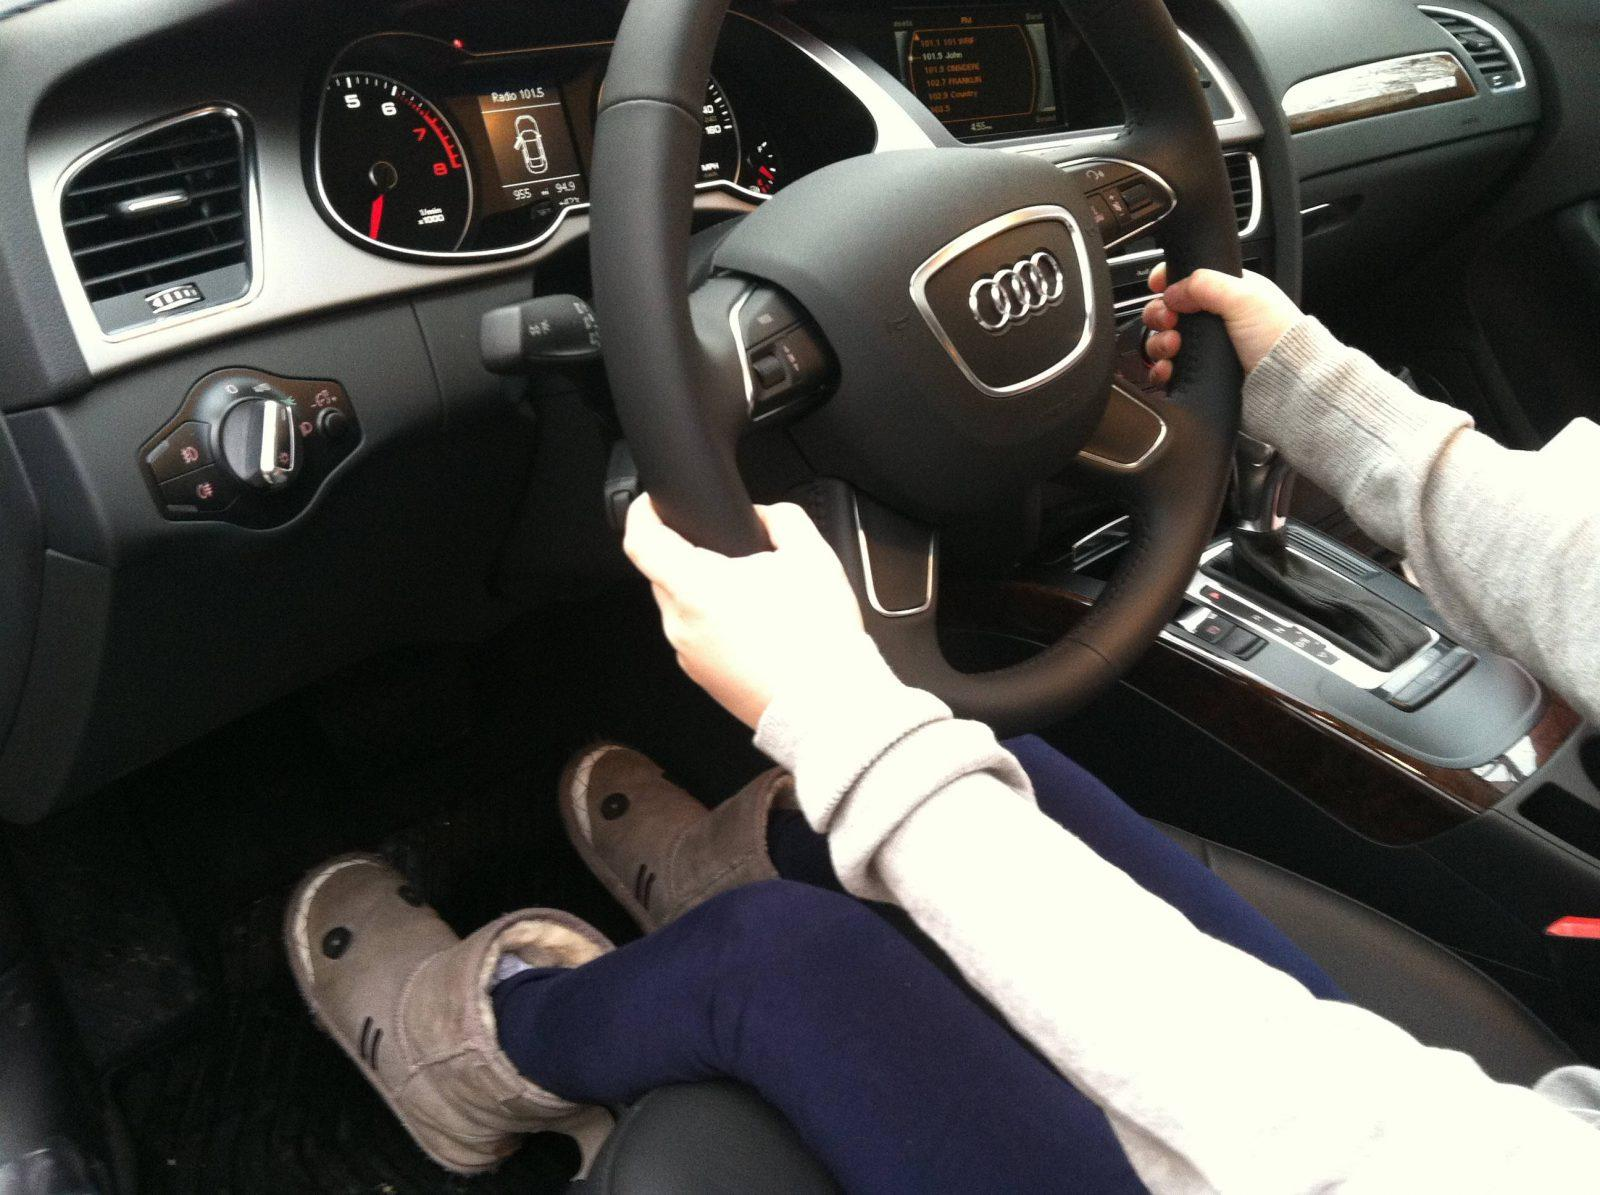 The Top 10 Cars For Short People Narrowing Down Your Choices